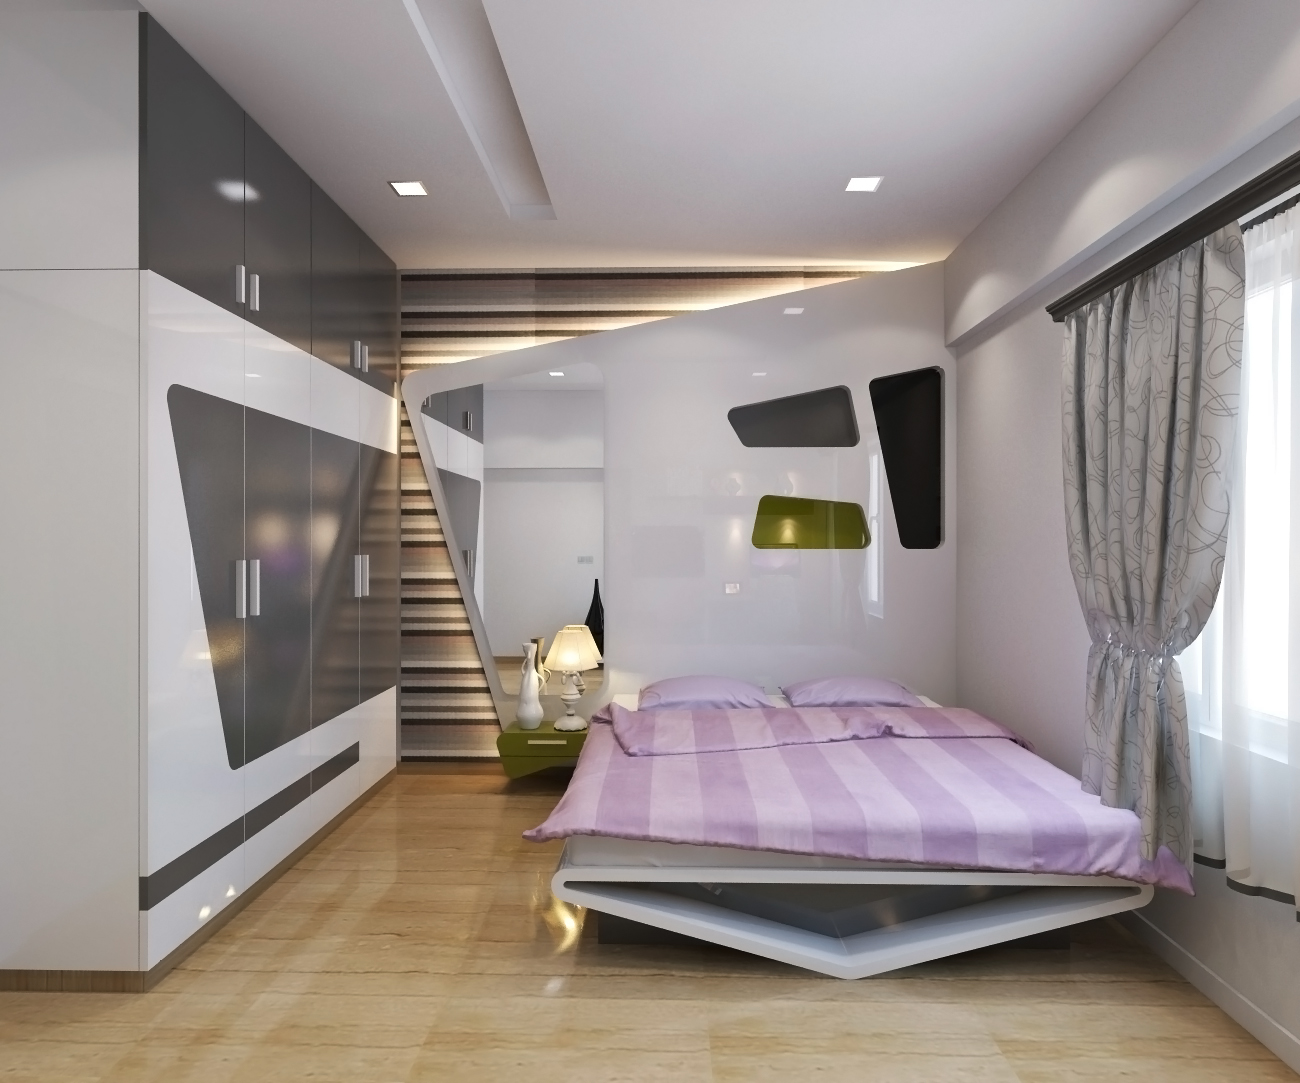 hi all in free time sunday recently done master bedroom software used 3d max vray ps - Bedroom 3d Design